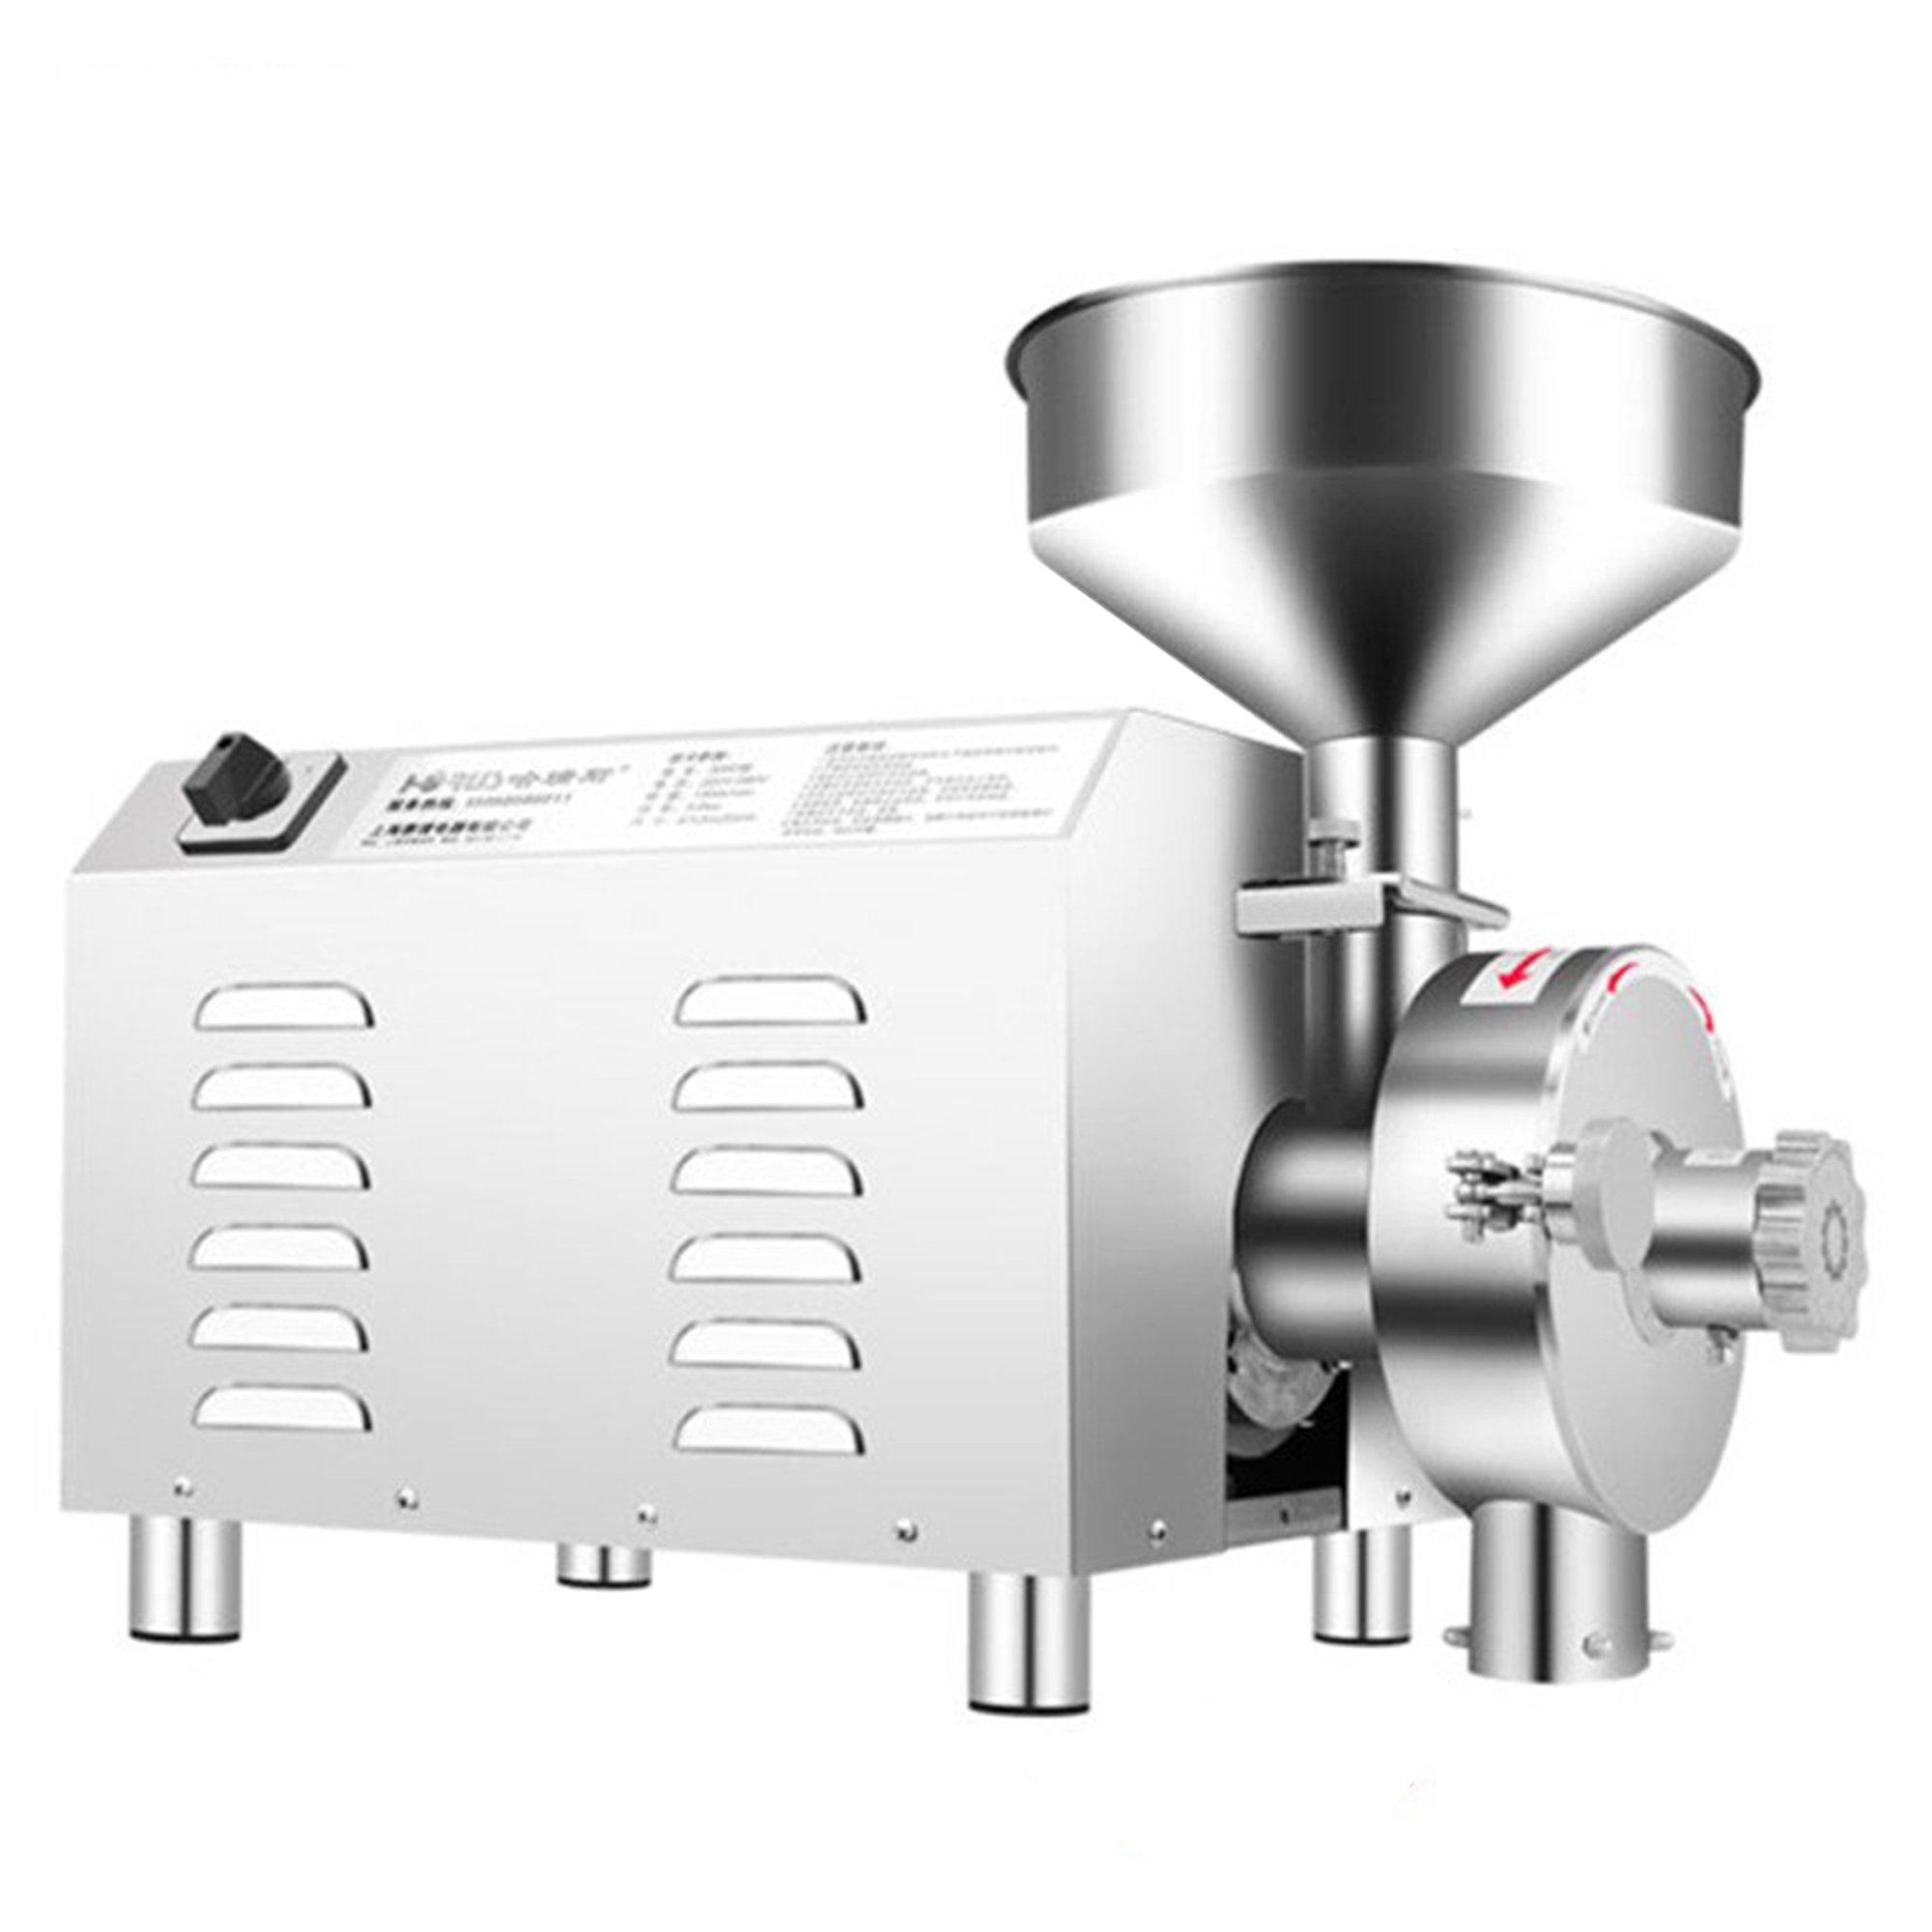 BAOSHISHAN 2200W Capacity:30-50 kg/h Commercial Superfine Grain Grinding Machine Spice and Chinese Herb Grinder Peppe Soybean Coffee Mill Machine (220V)